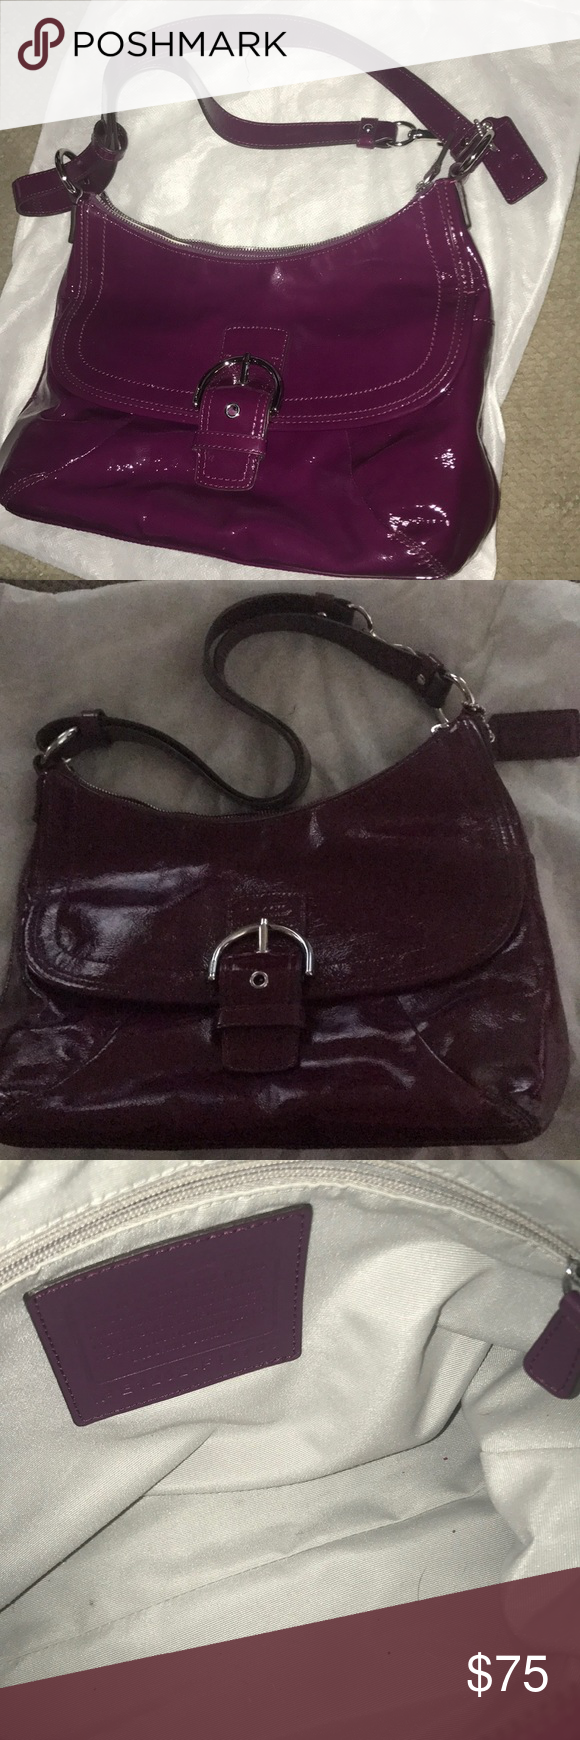 Coach purse Never used Coach Bags Shoulder Bags